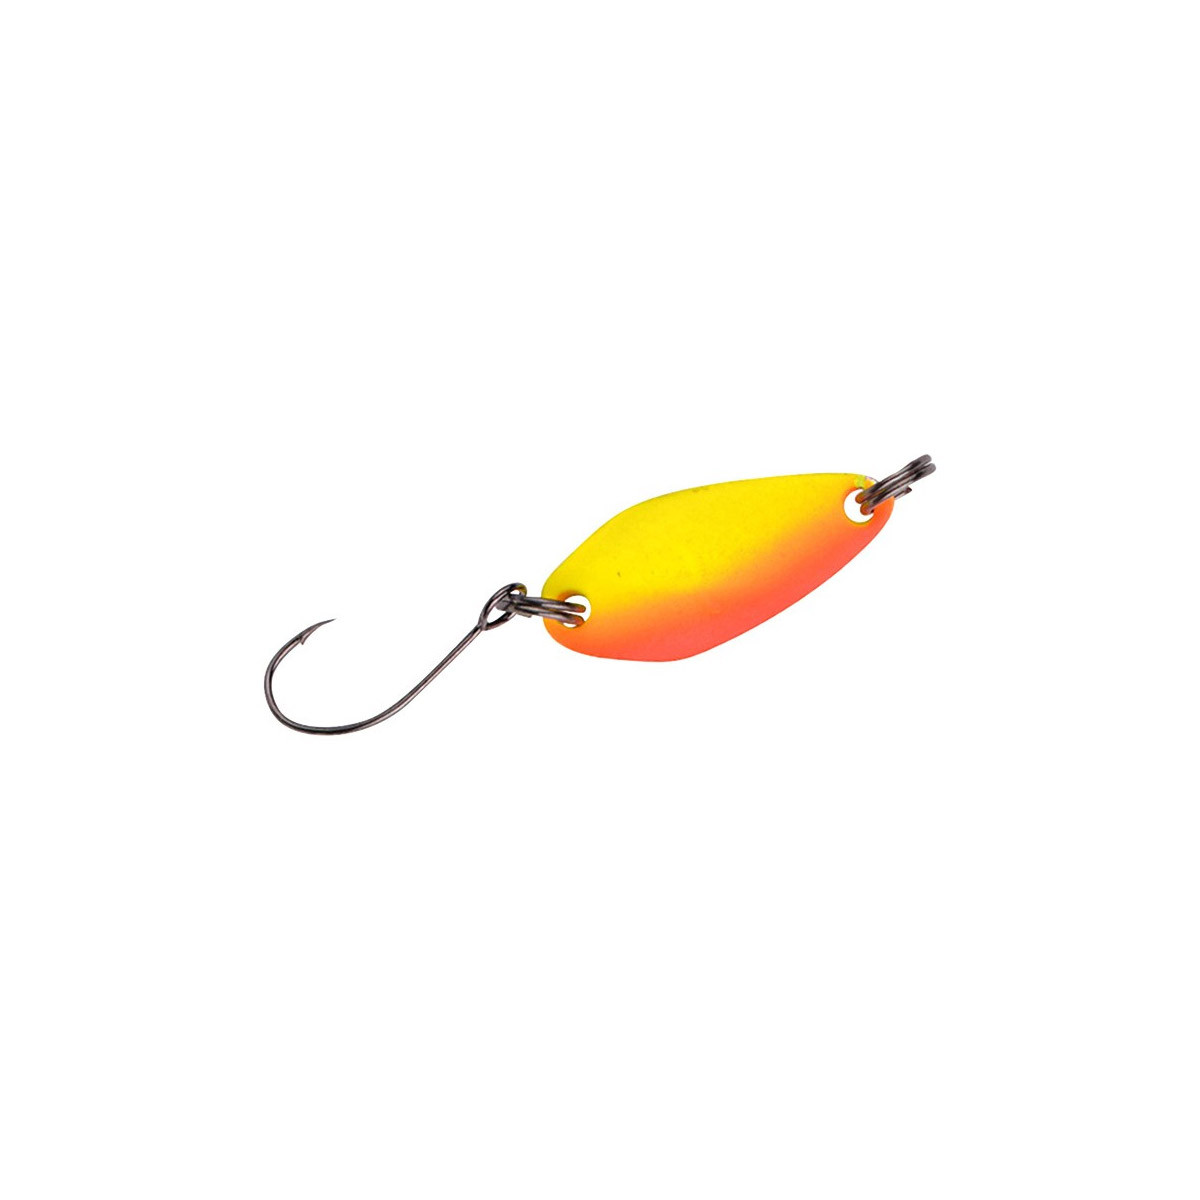 Spro Trout Master Incy Spoon 2 Gram